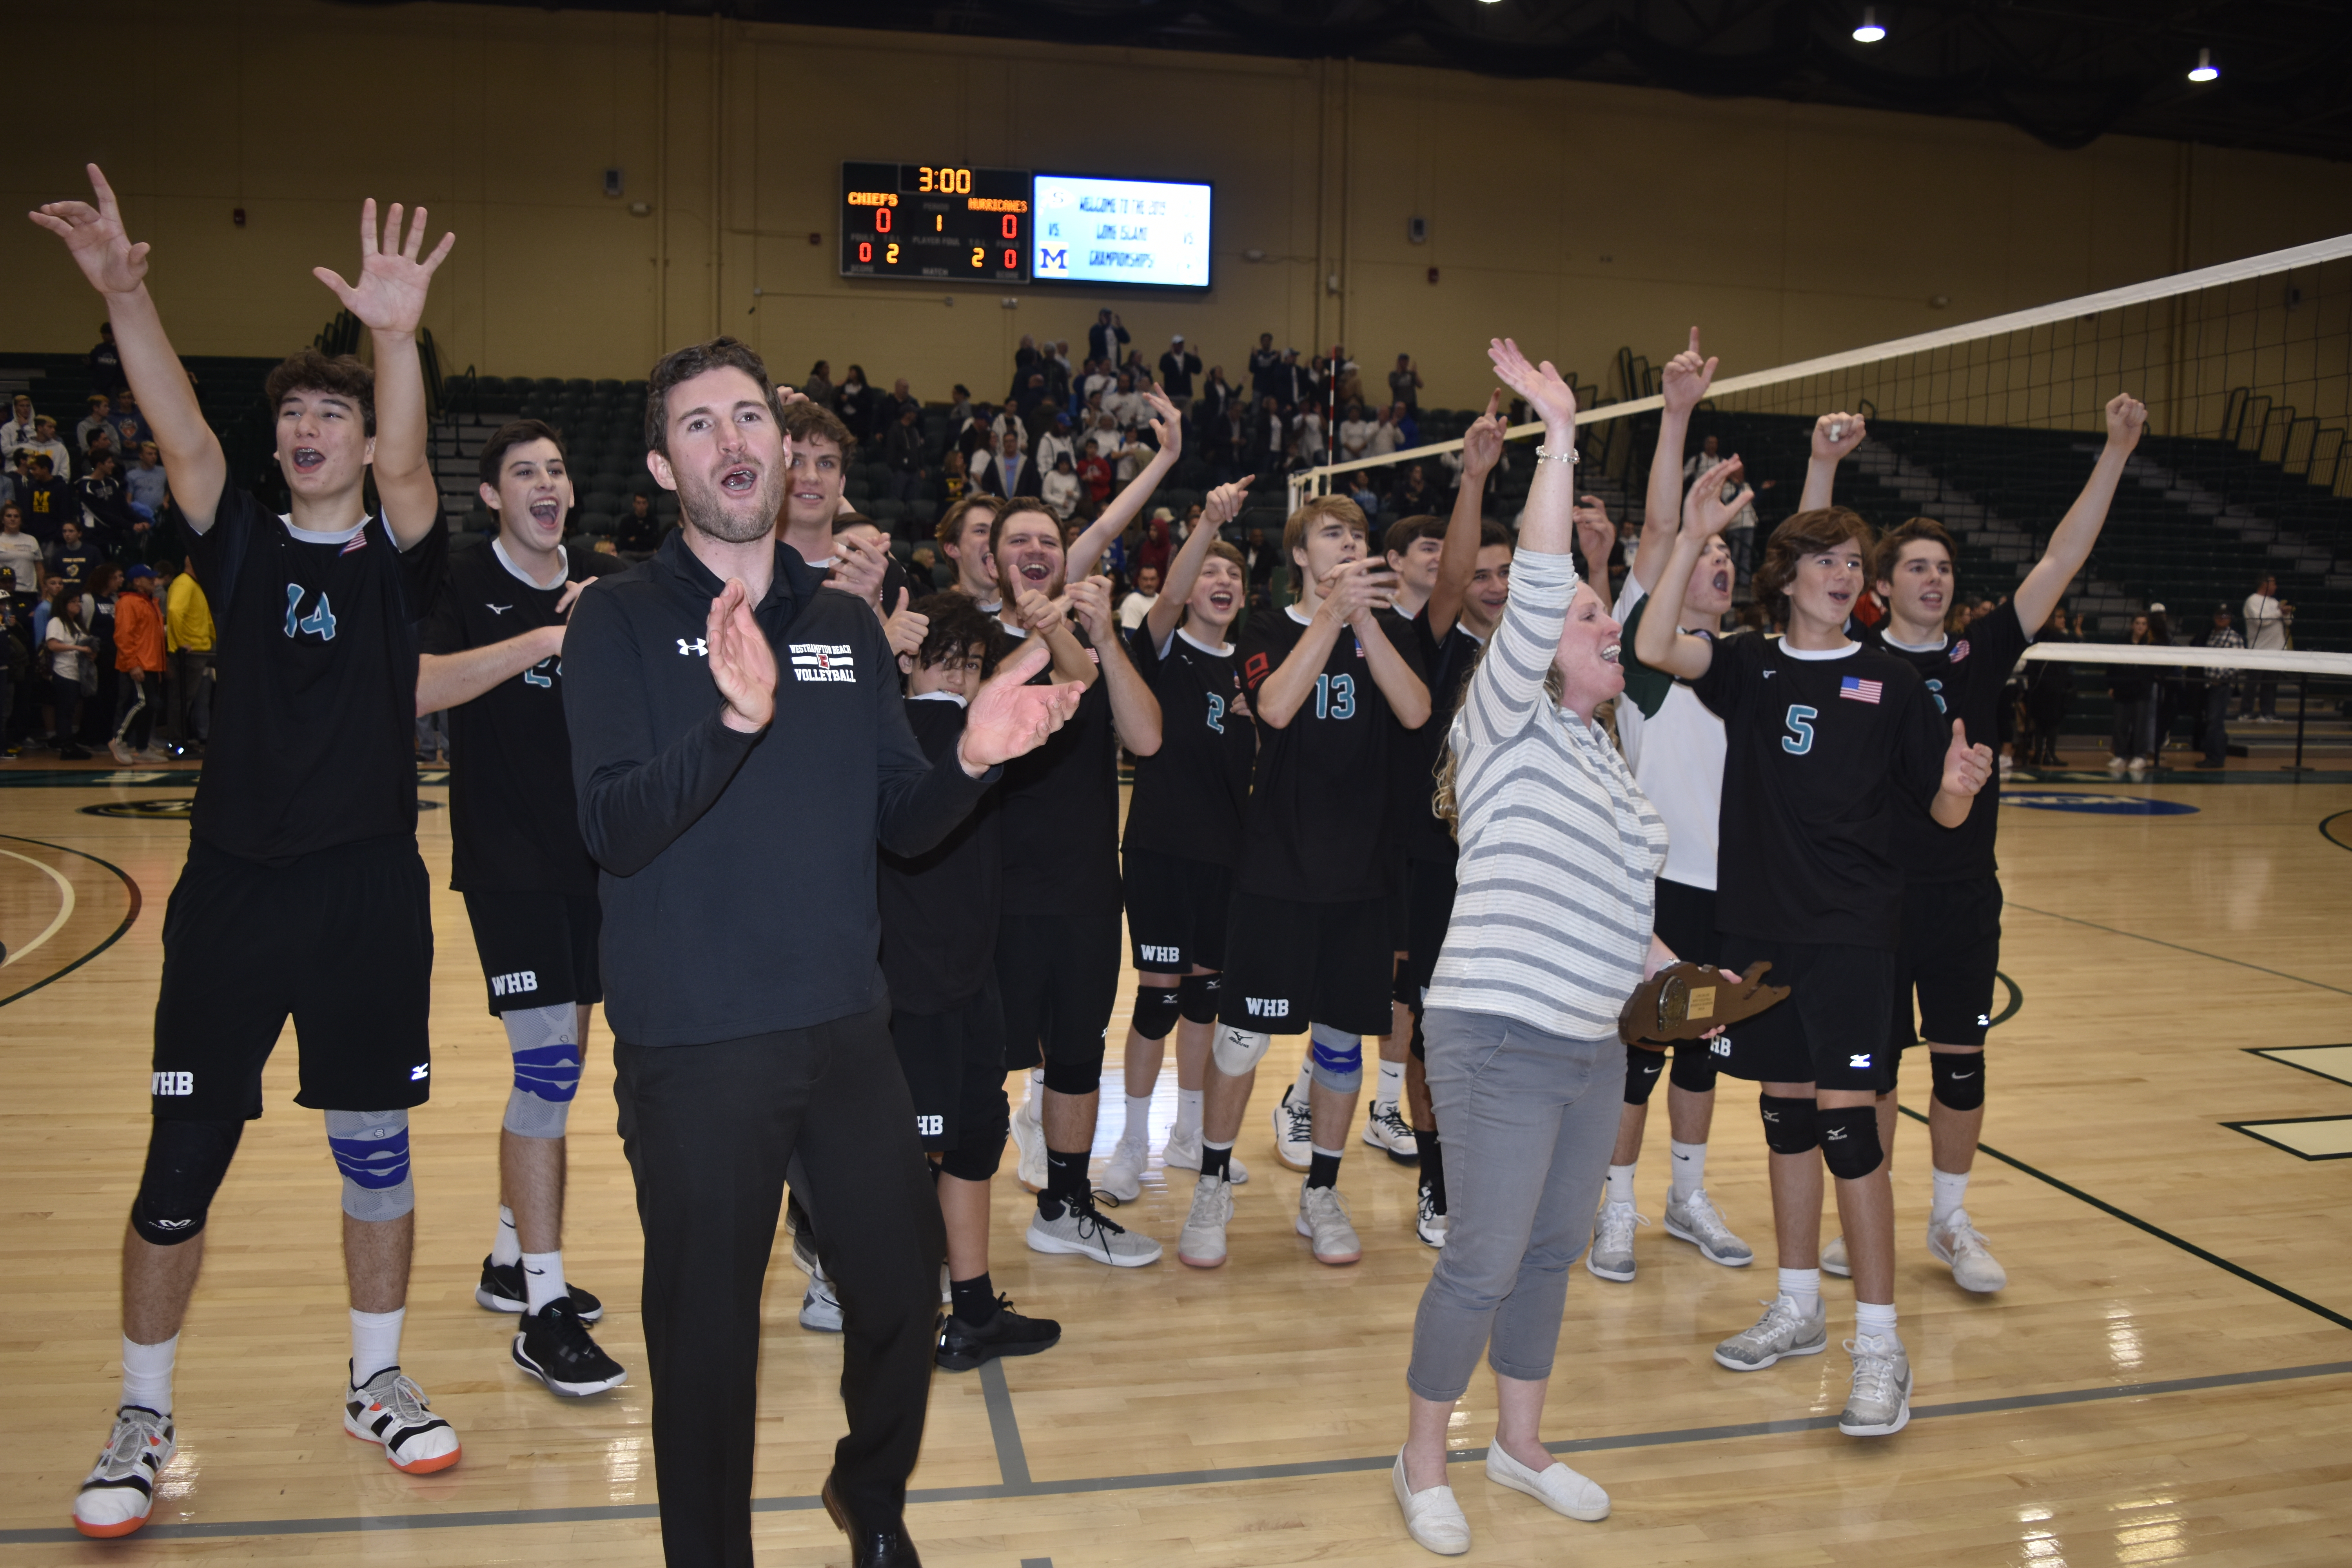 The Westhampton Beach boys volleyball team thanks the community for its support after winning the Long Island Division II Championship on Tuesday night.